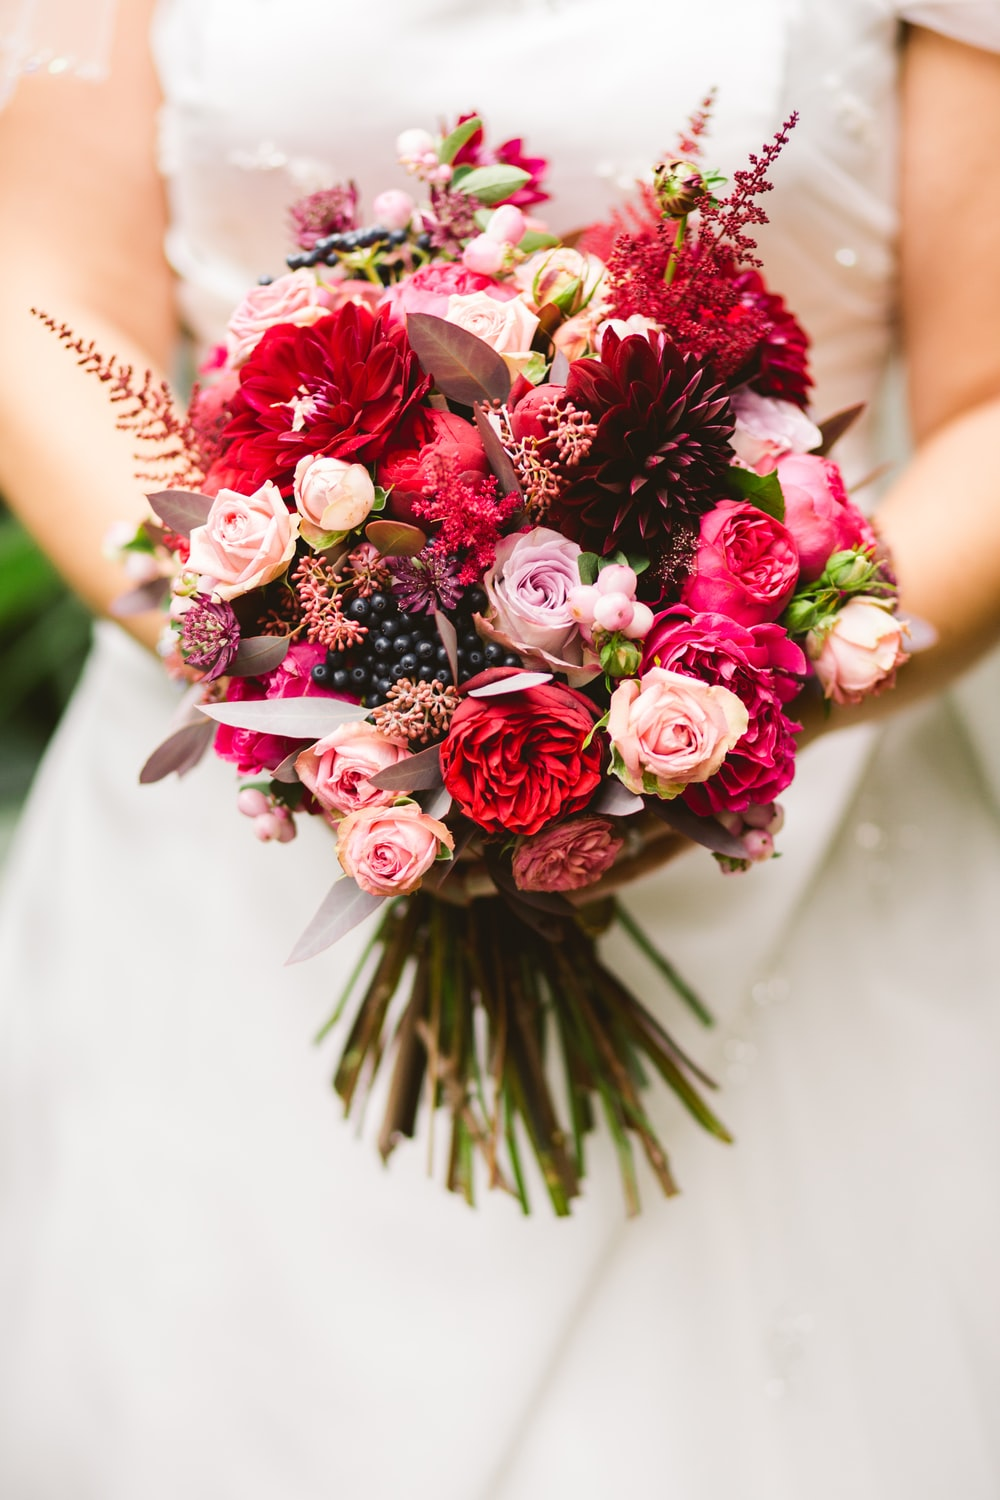 A Vibrant Bouquet Photo By Thomas Ae Thomasae On Unsplash